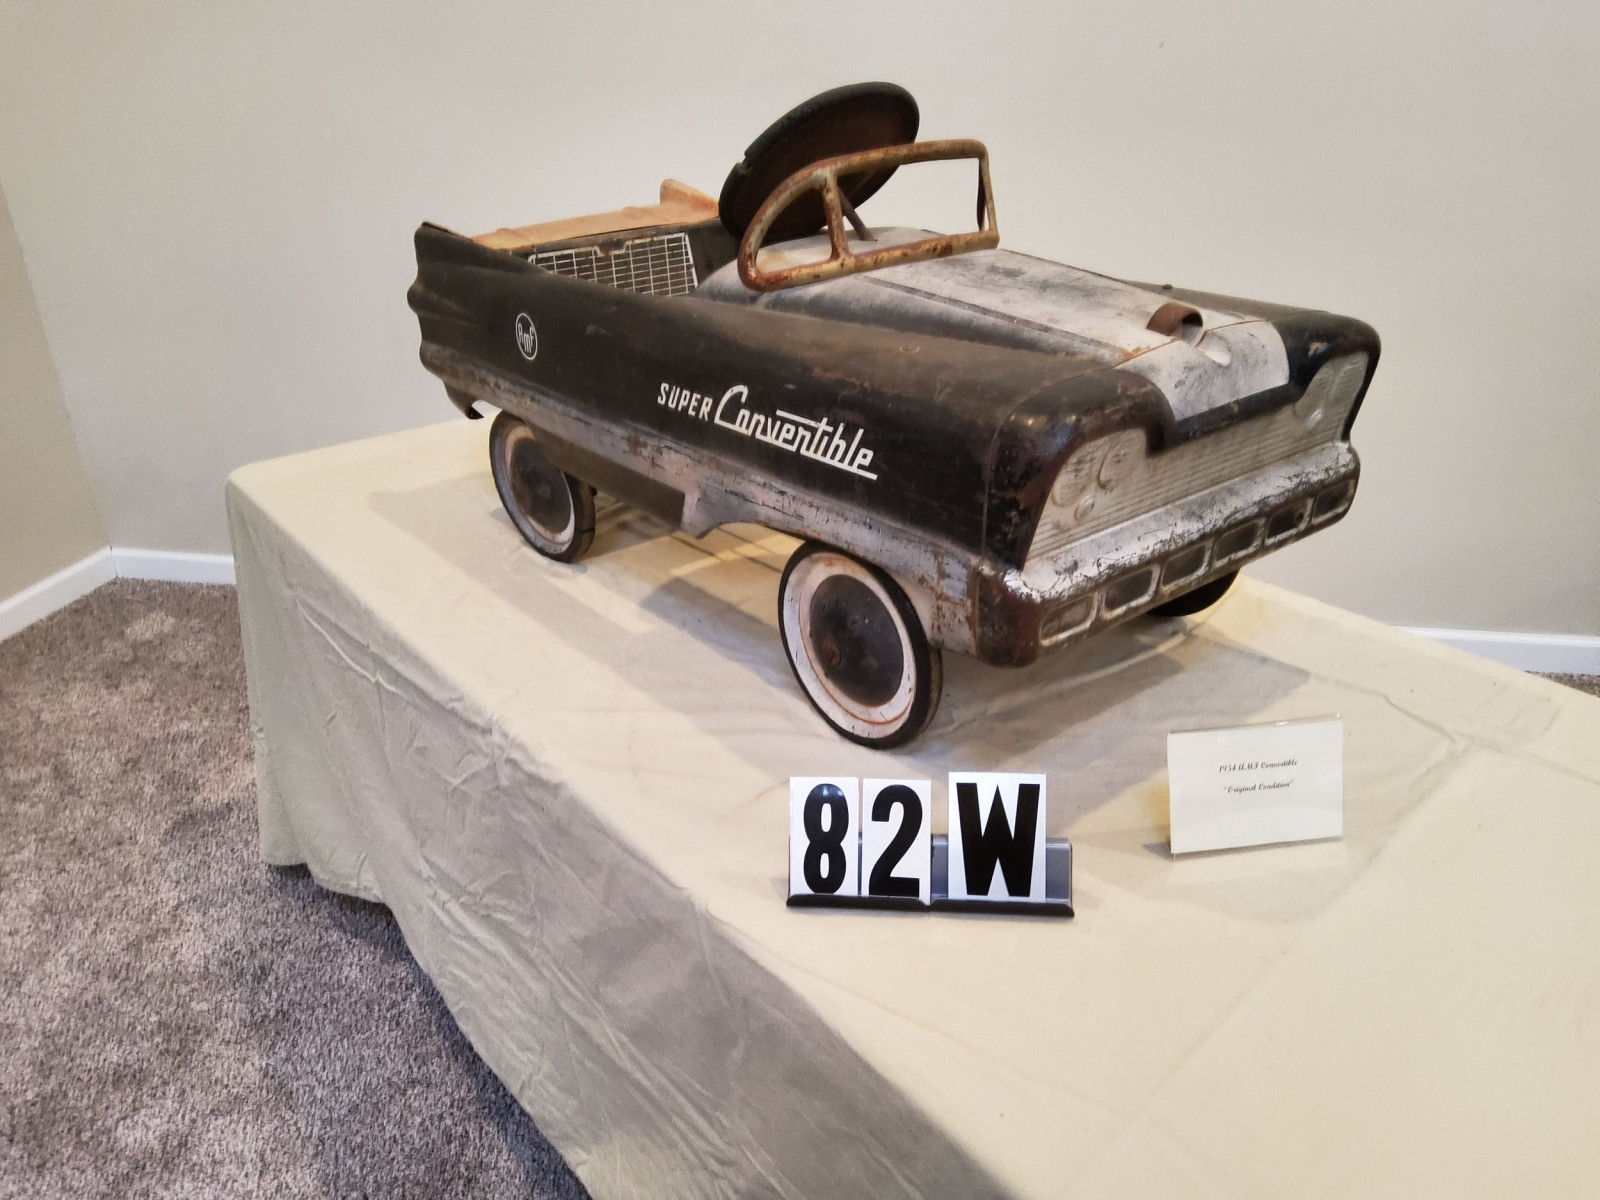 1954 AMF Super Convertible Pedal Car - Image 2